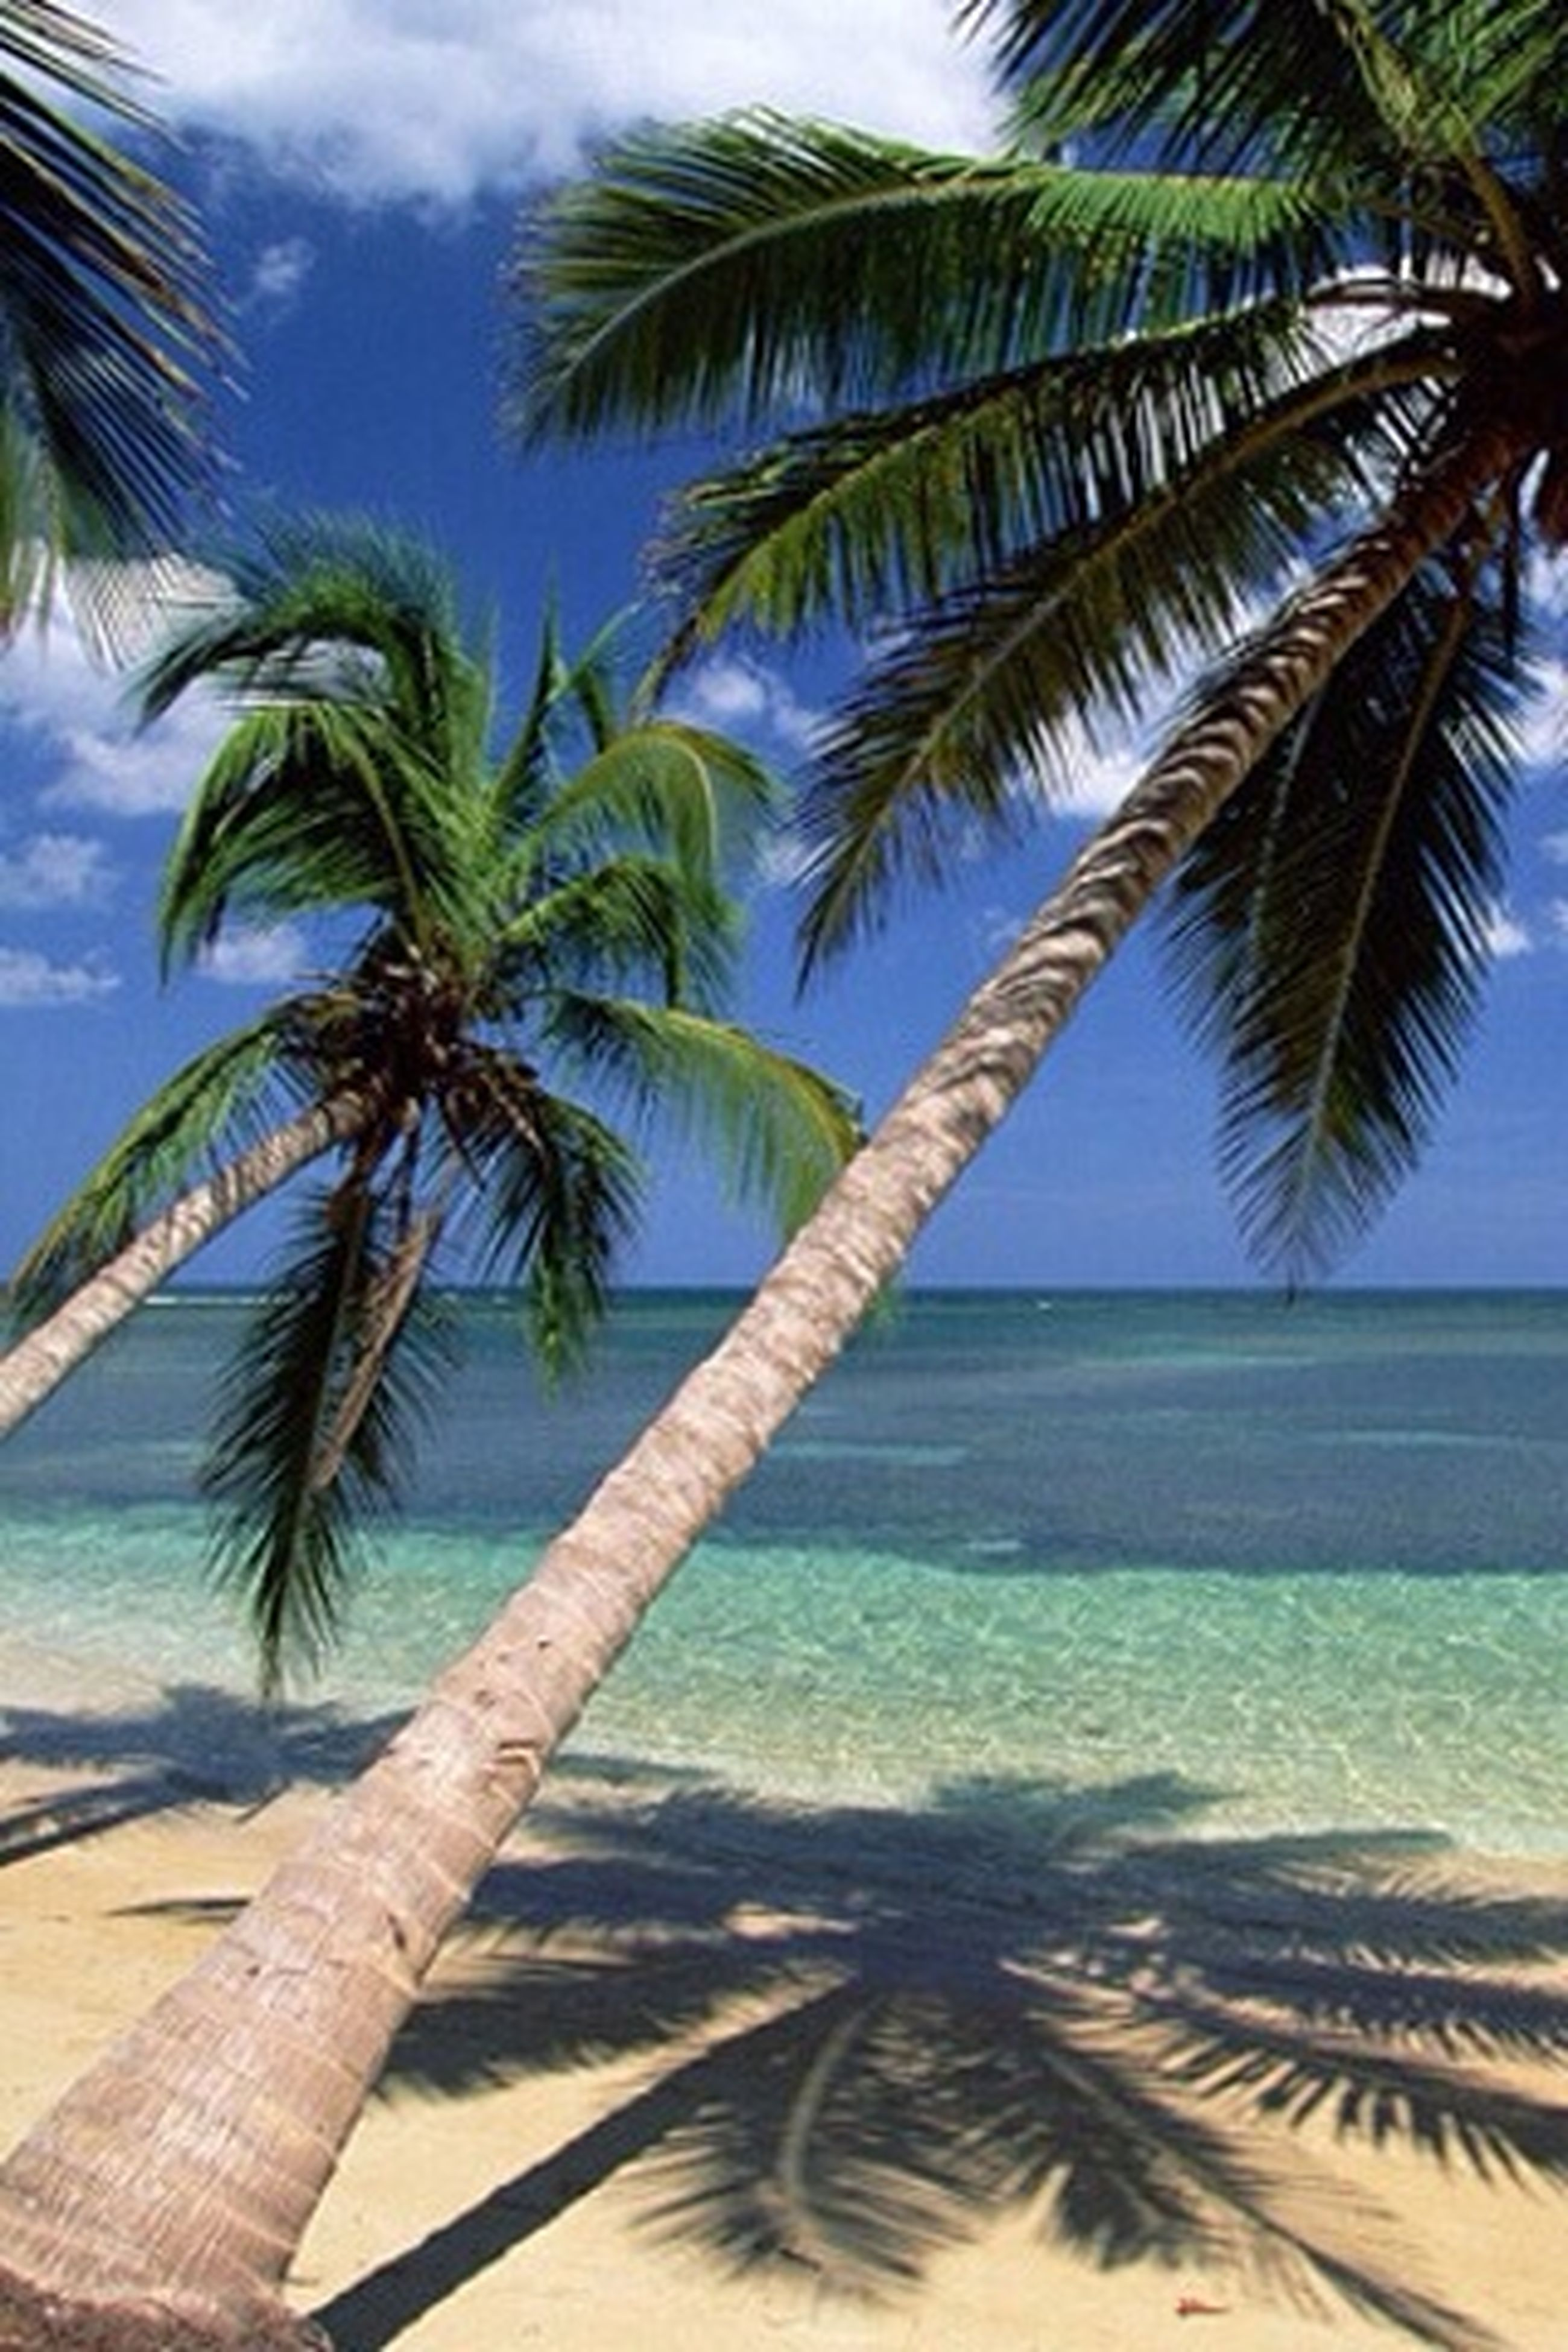 palm tree, sea, beach, tree, sky, tranquility, palm leaf, horizon over water, water, tree trunk, growth, nature, tranquil scene, beauty in nature, coconut palm tree, sand, scenics, shore, tropical climate, tropical tree